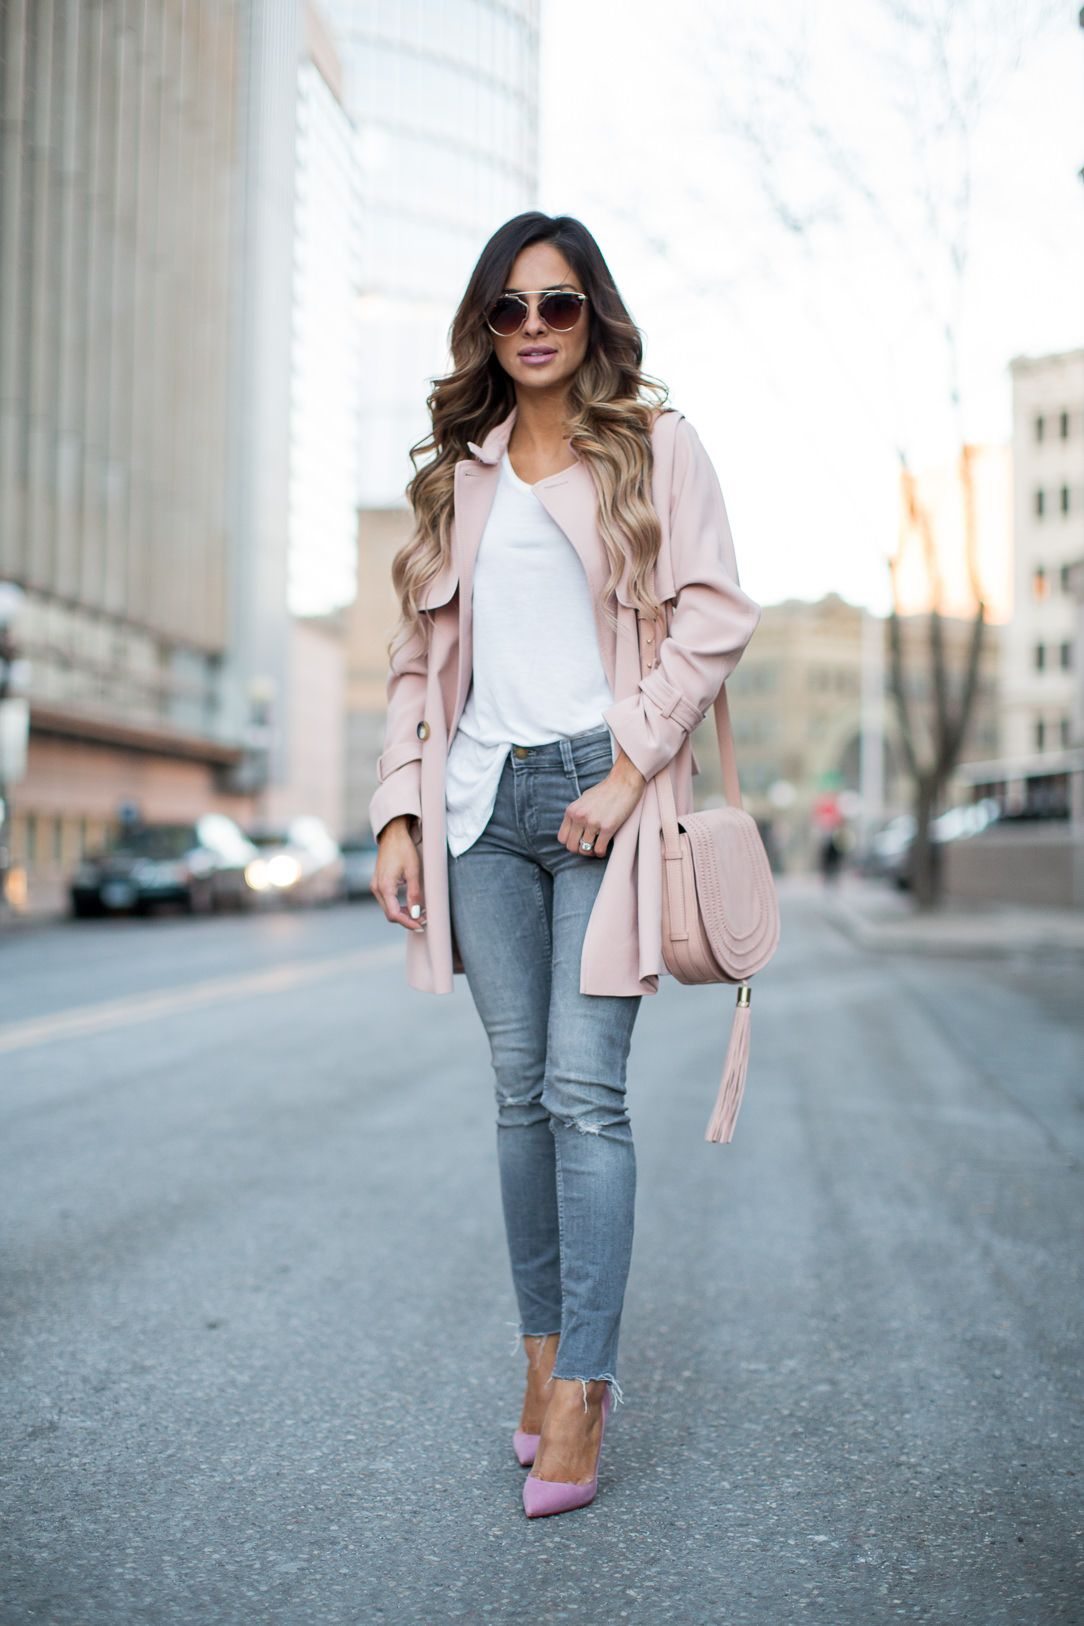 Topshop Pink Trench Coat Zara Gray Jeans Similar Here